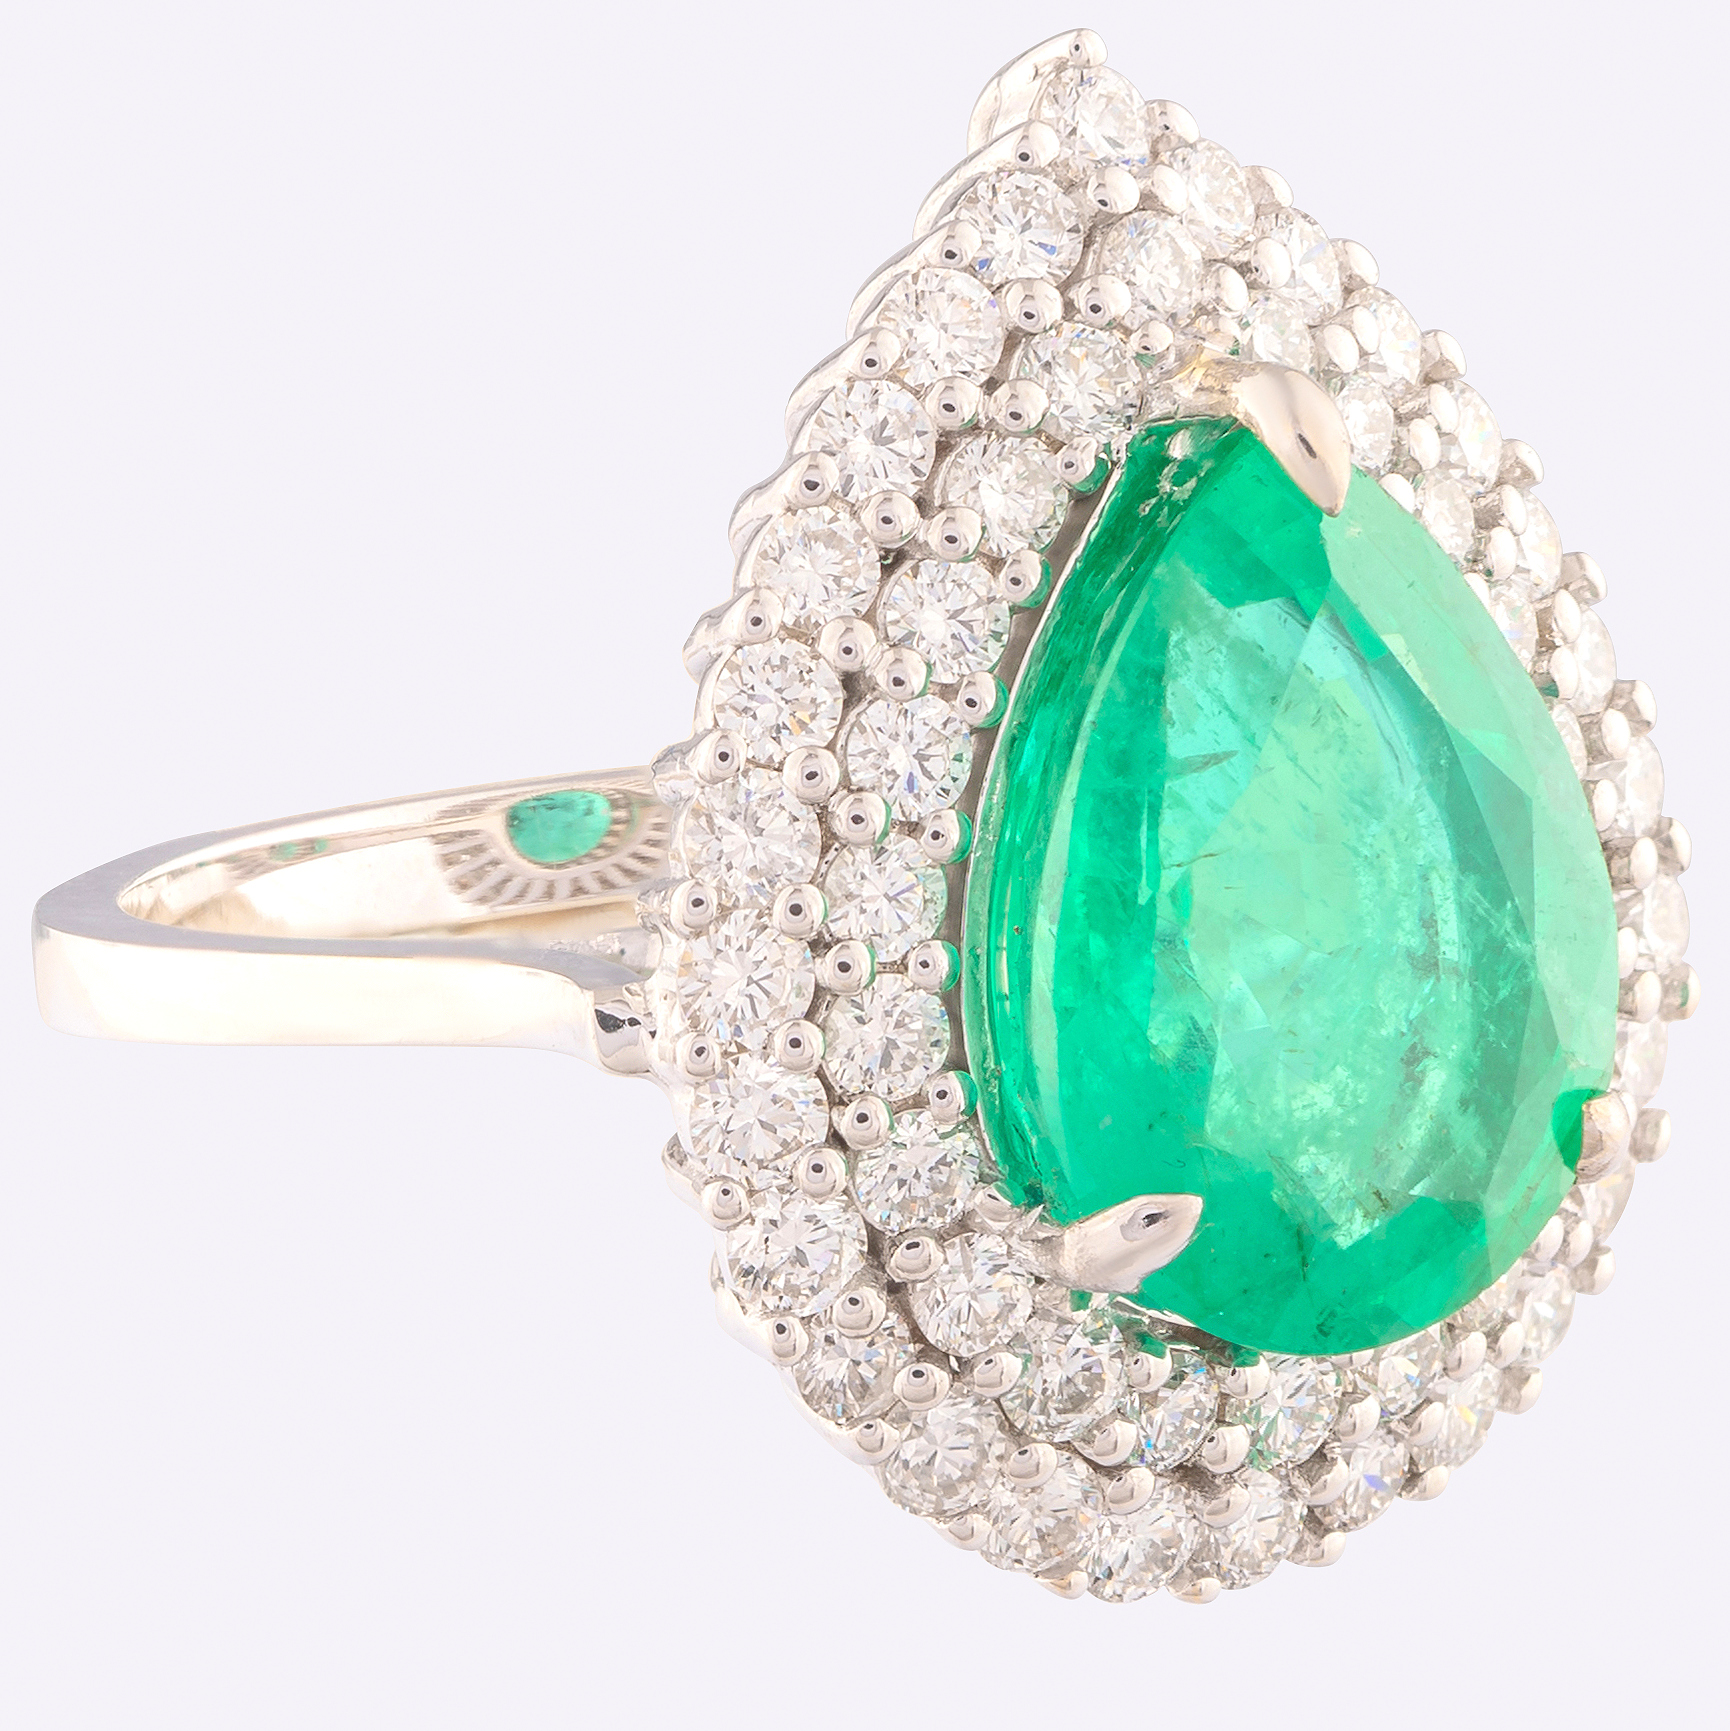 14K White Gold Cluster Ring 4,70 Ct. Natural Emerald - 1,40 Ct. Diamond - Image 3 of 4